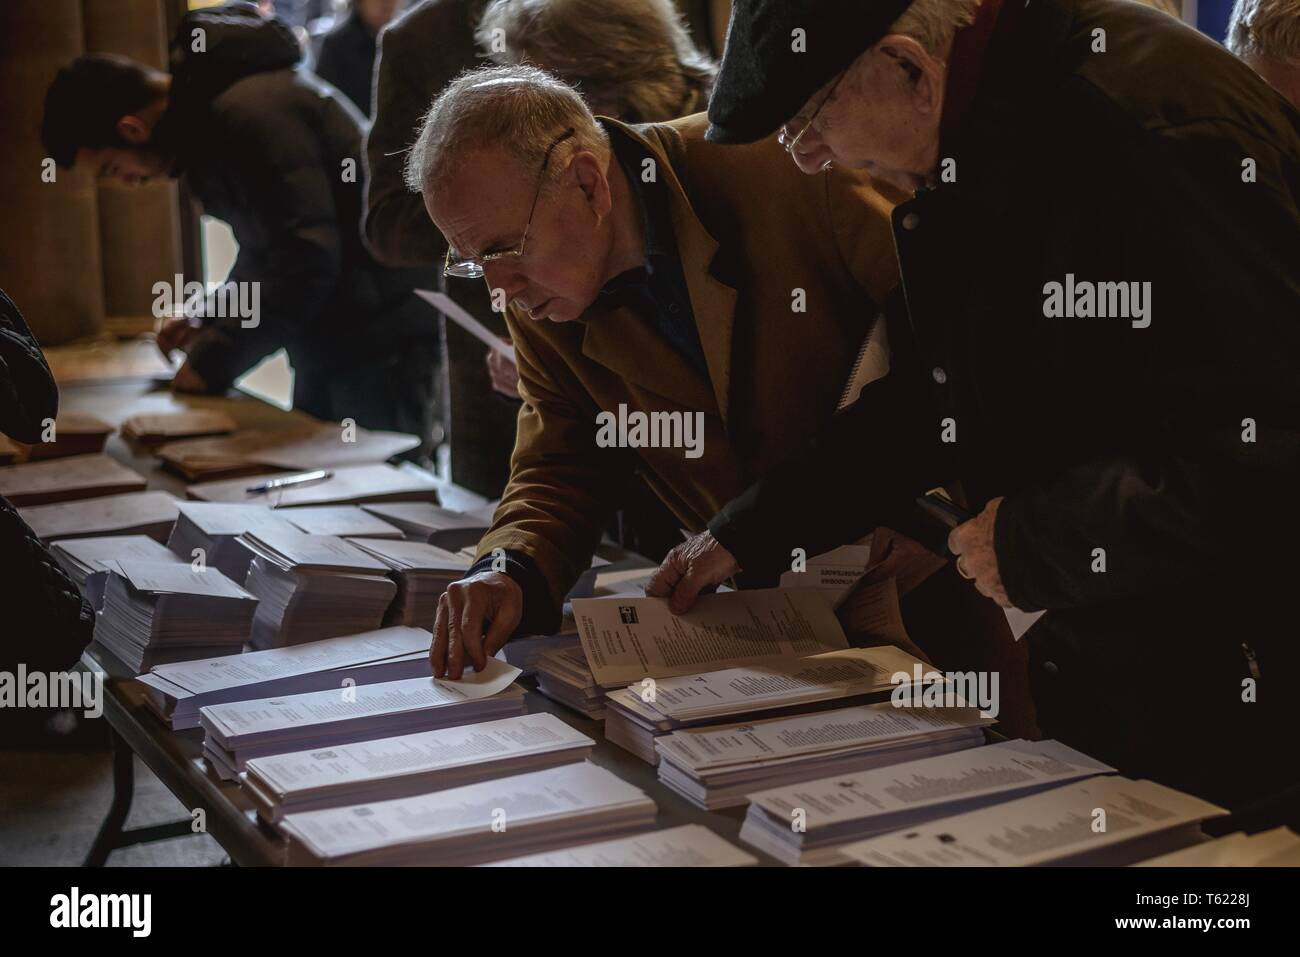 Barcelona, Spain  28th Apr, 2019  Ballots are pictured in a polling